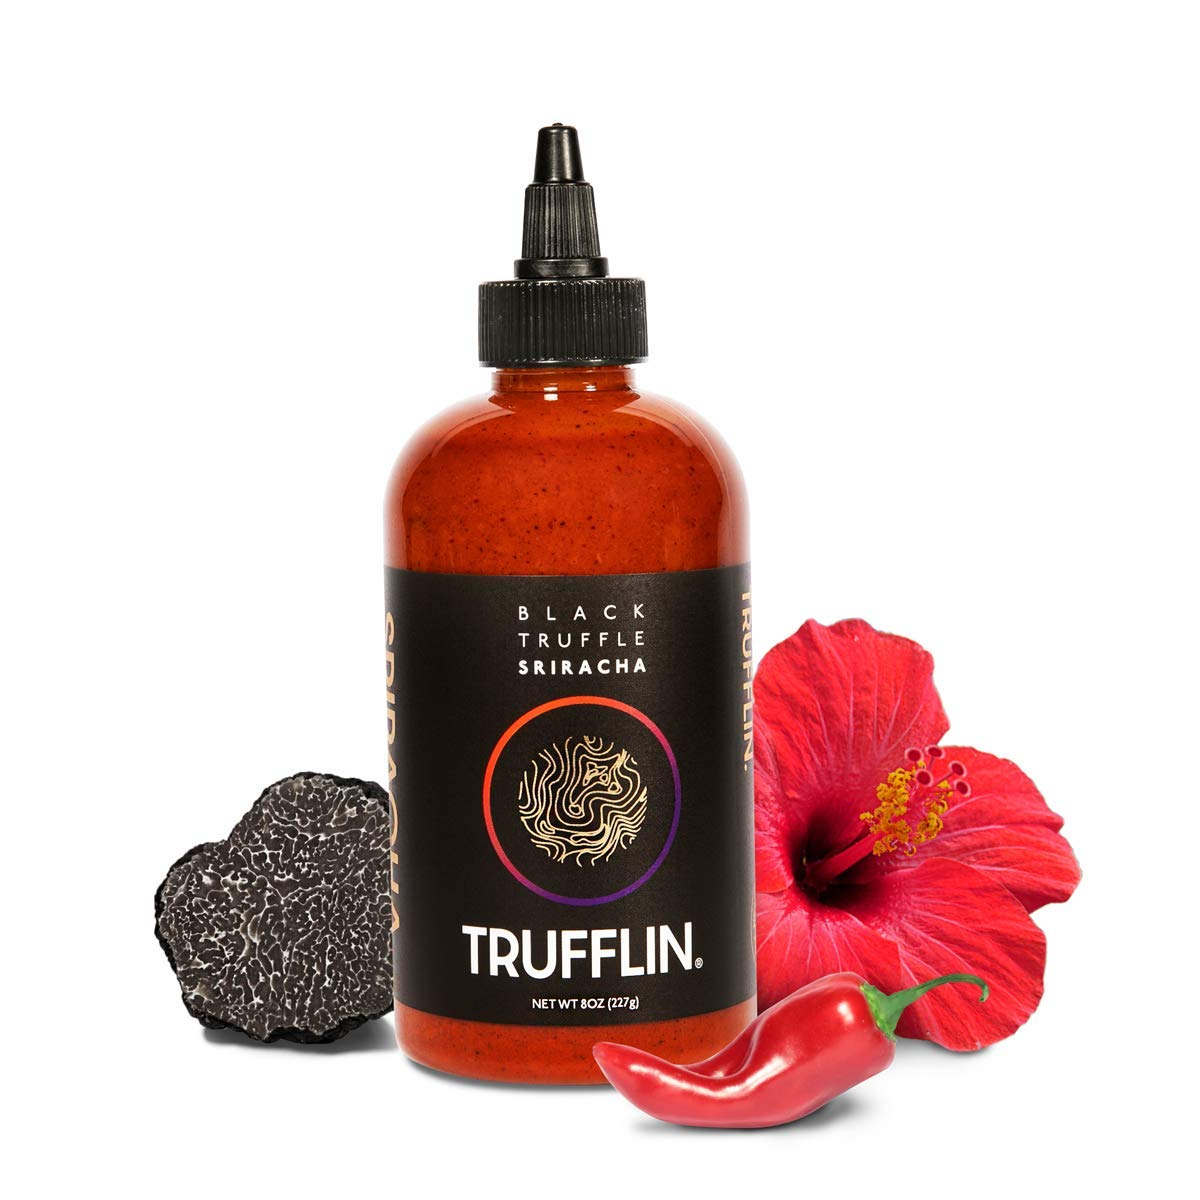 TRUFFLIN Sriracha – Gourmet Black Truffle Hot Sauce with Aged Peppers, Extra Virgin Olive Oil and Garlic with No Sugar Added, Gluten Free, Paleo and Vegan Friendly (8.5oz)